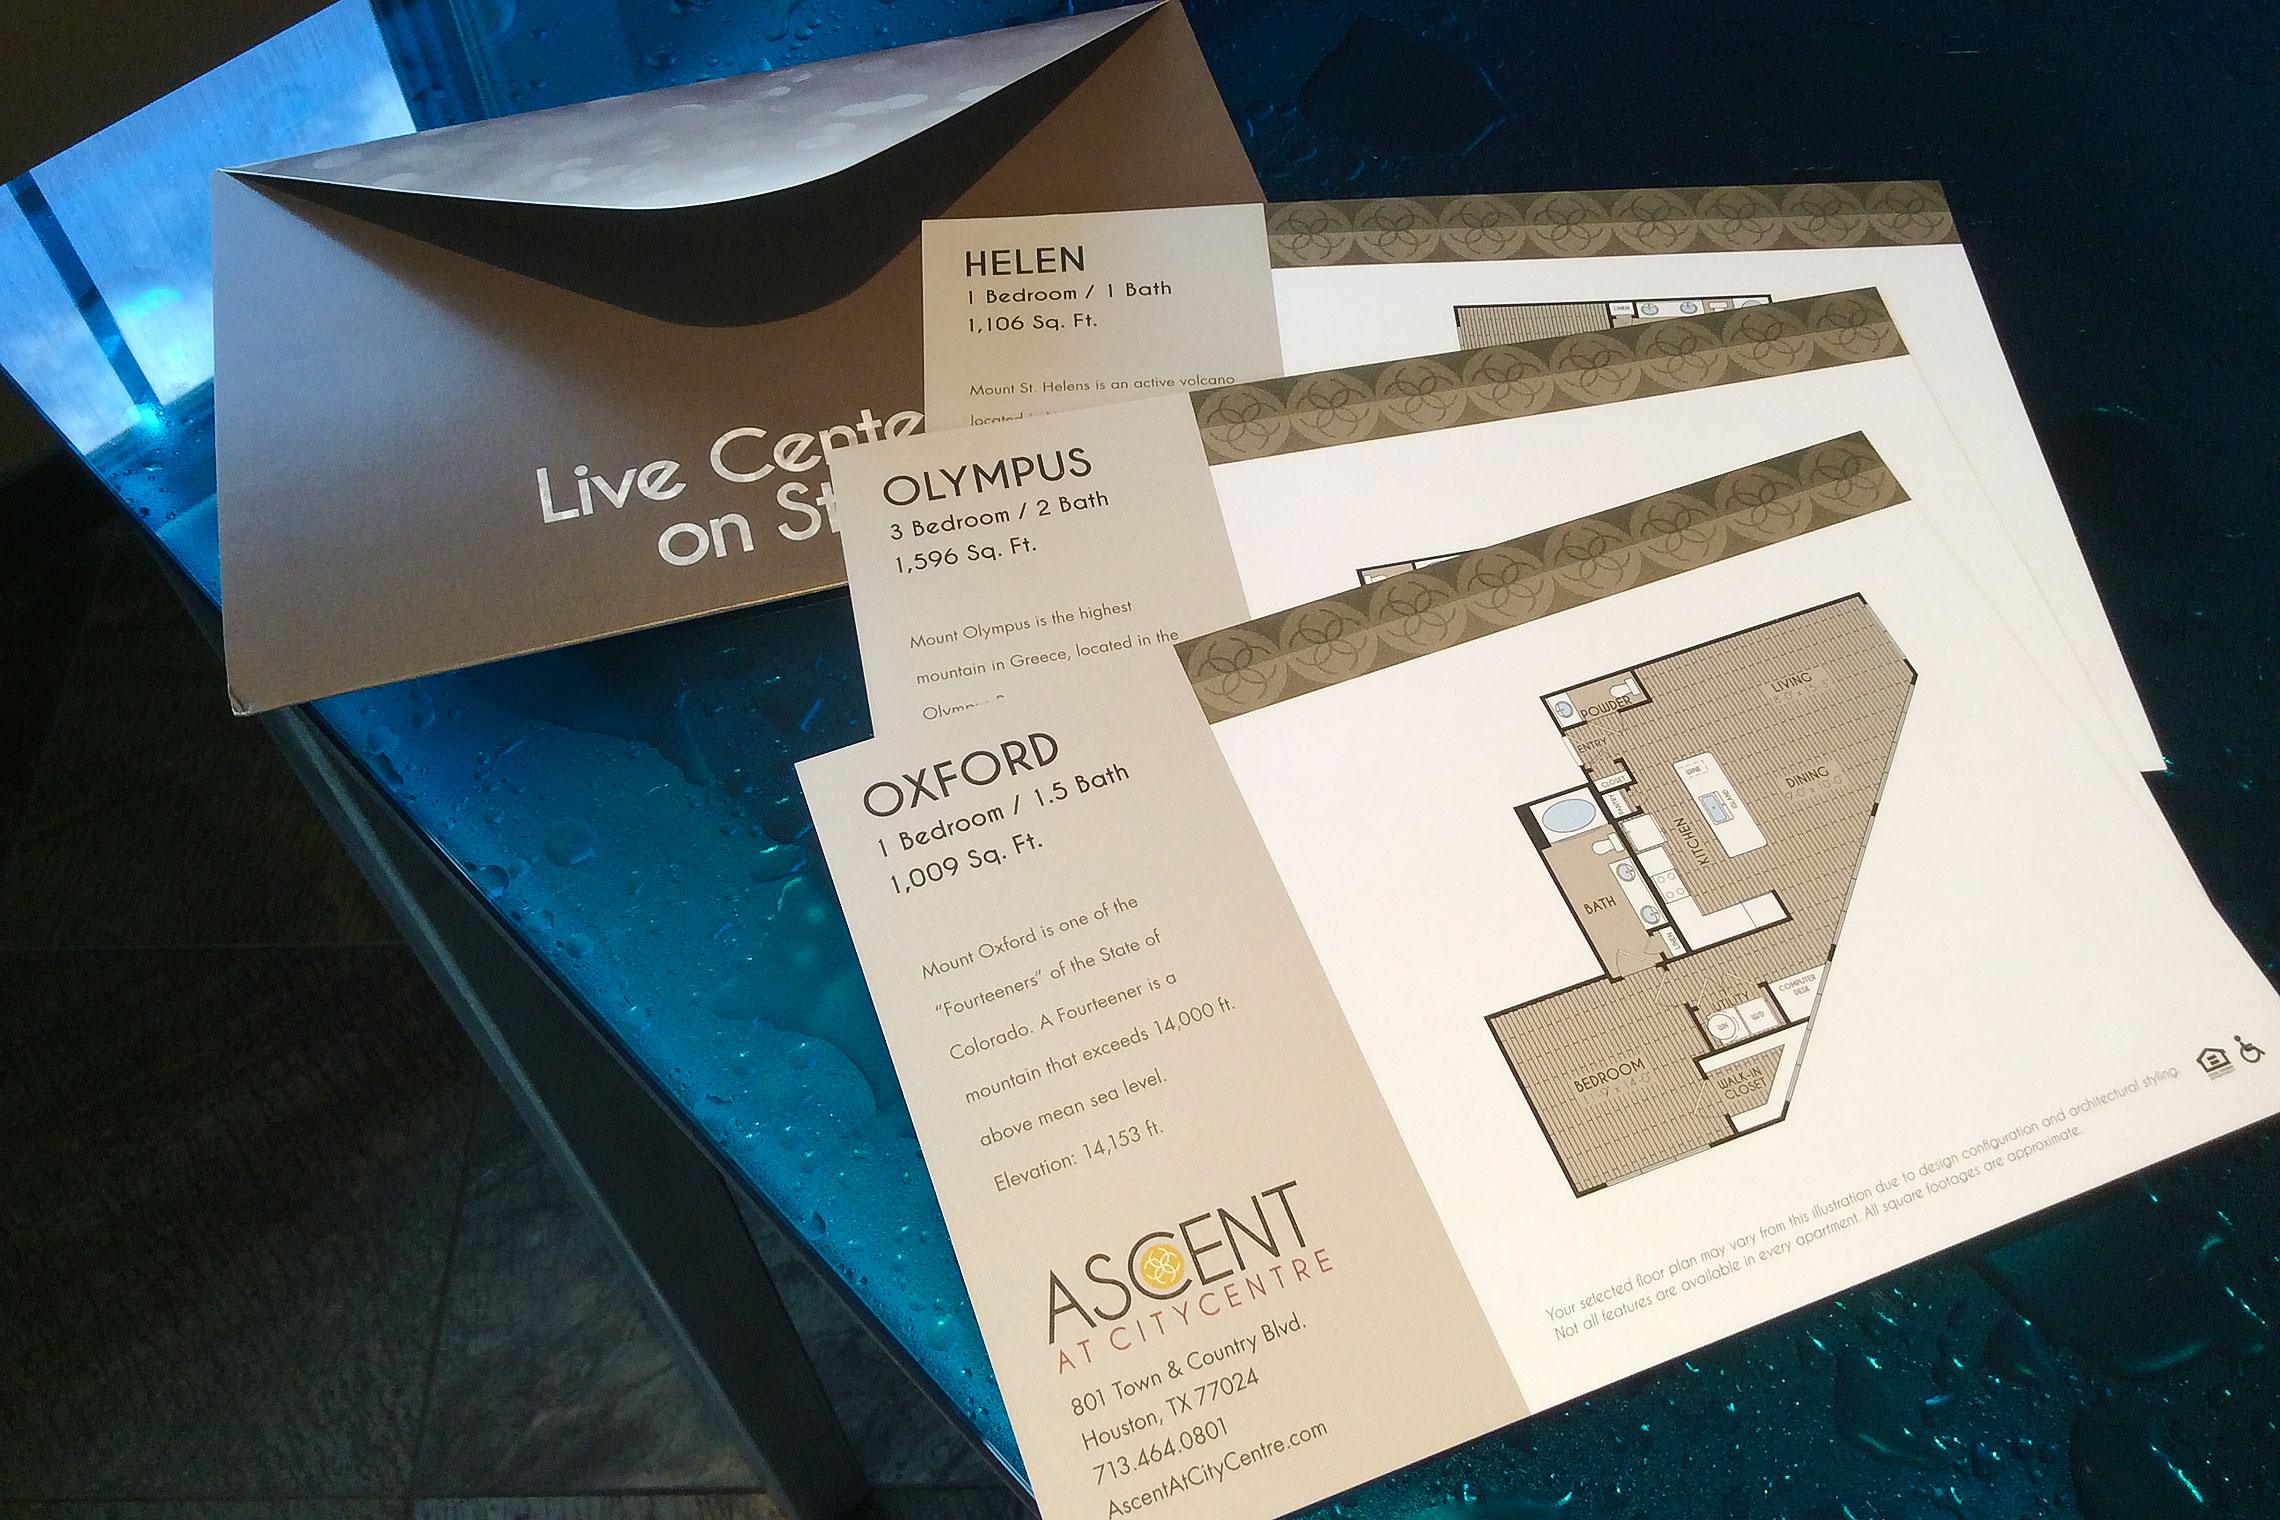 Ascent at CITYCENTRE Collateral - Amenity Fold-Out and Floor Plan Inserts